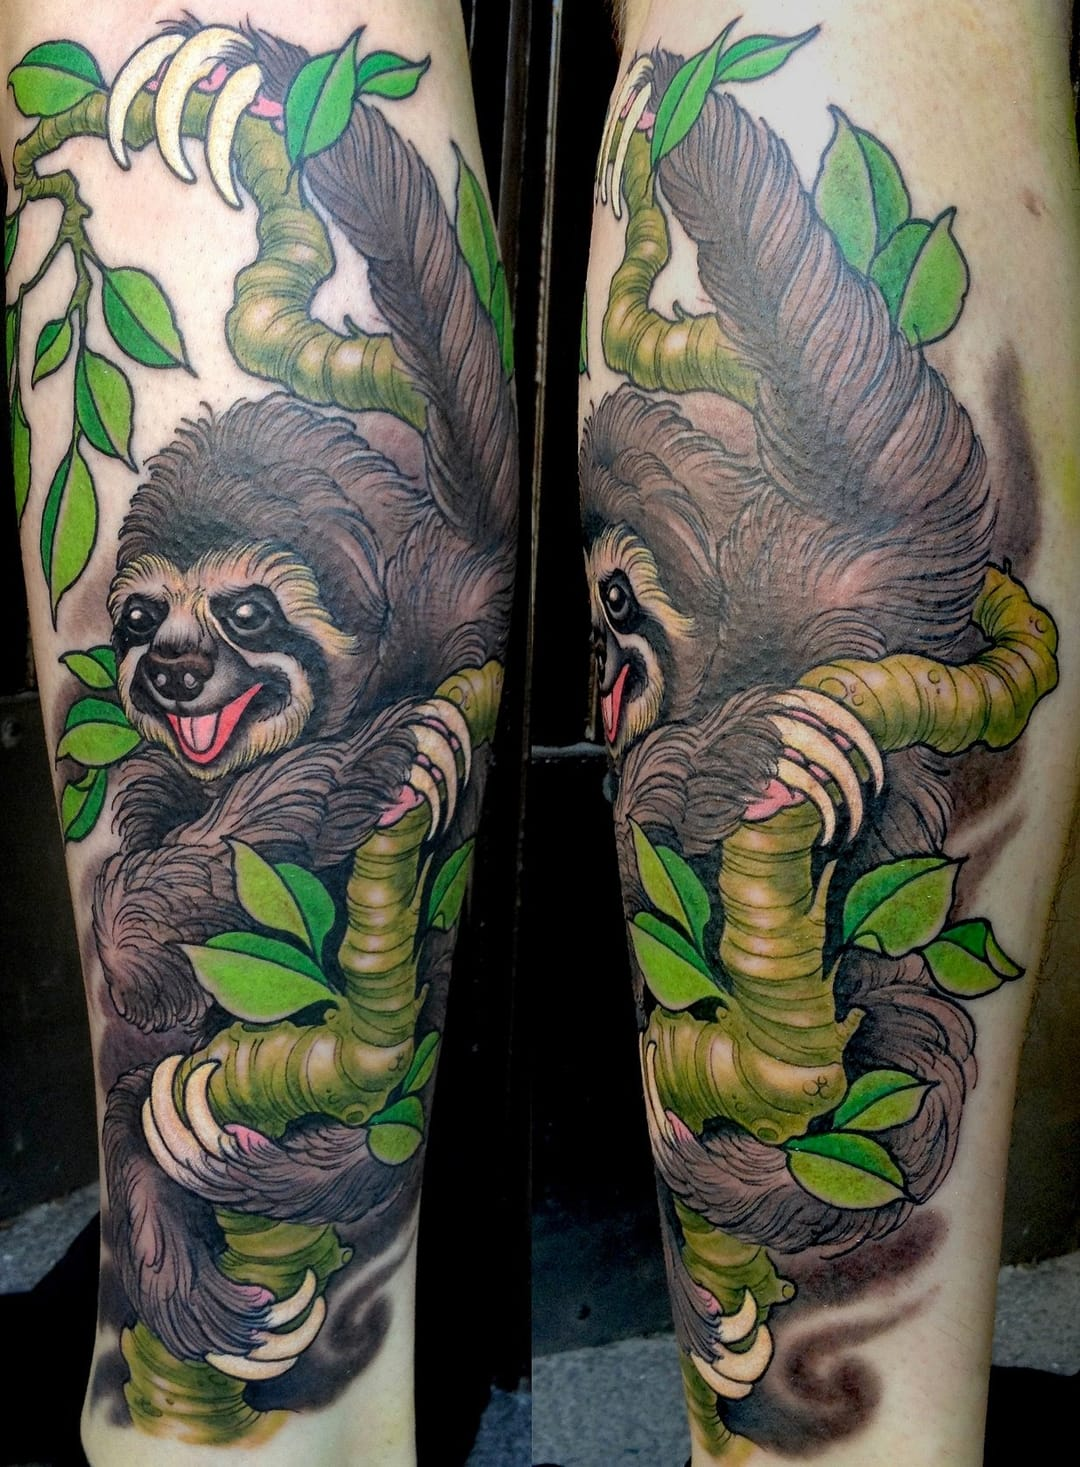 15 Relaxing Sloth Tattoos